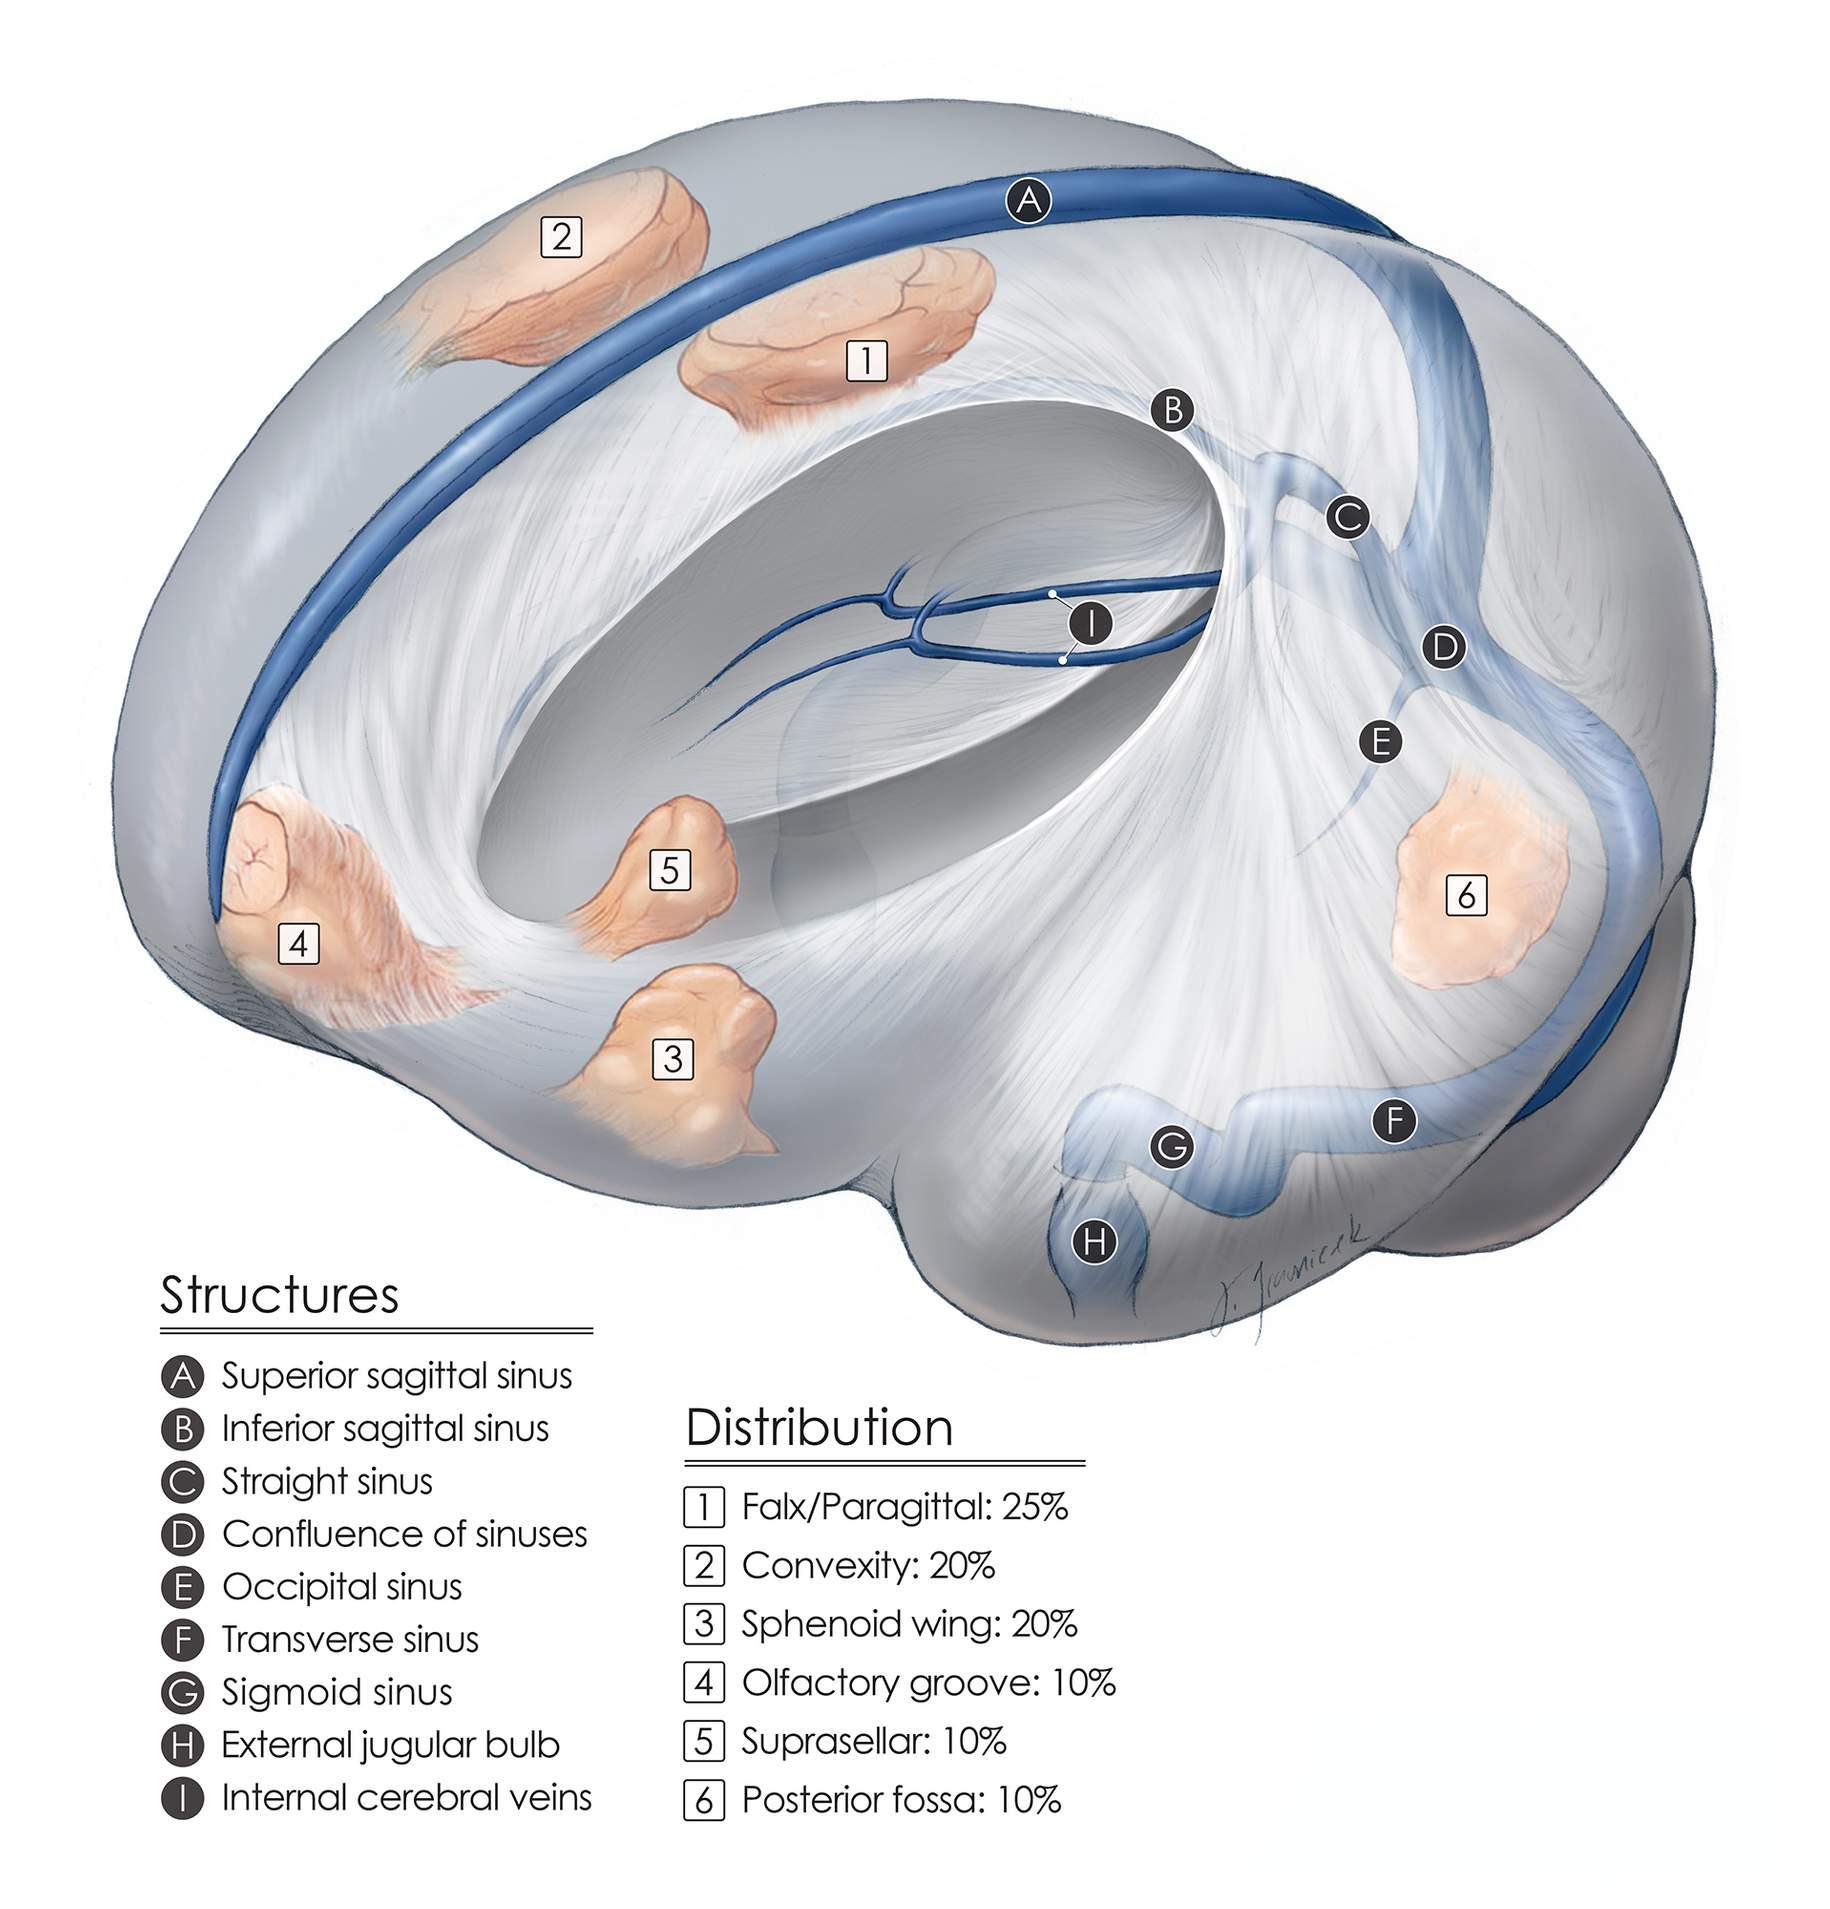 Figure 1: Meningiomas are categorized according to their usual locations.